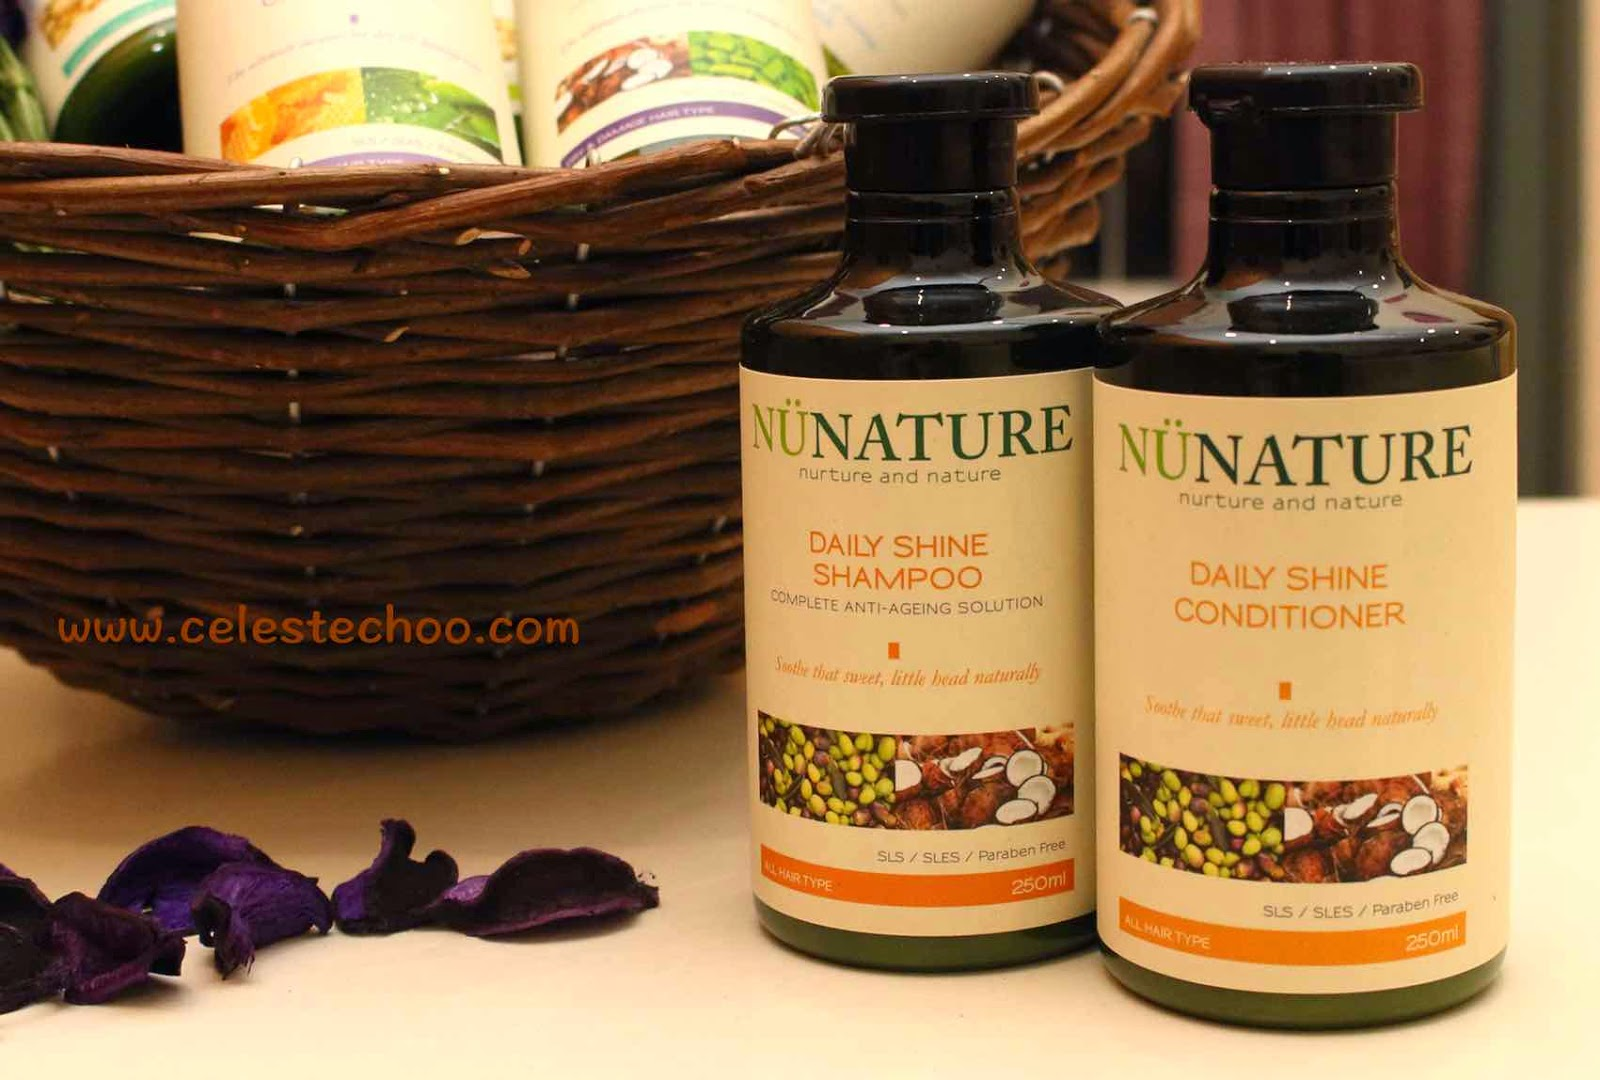 nunature-daily-shine-shampoo-and-conditioner